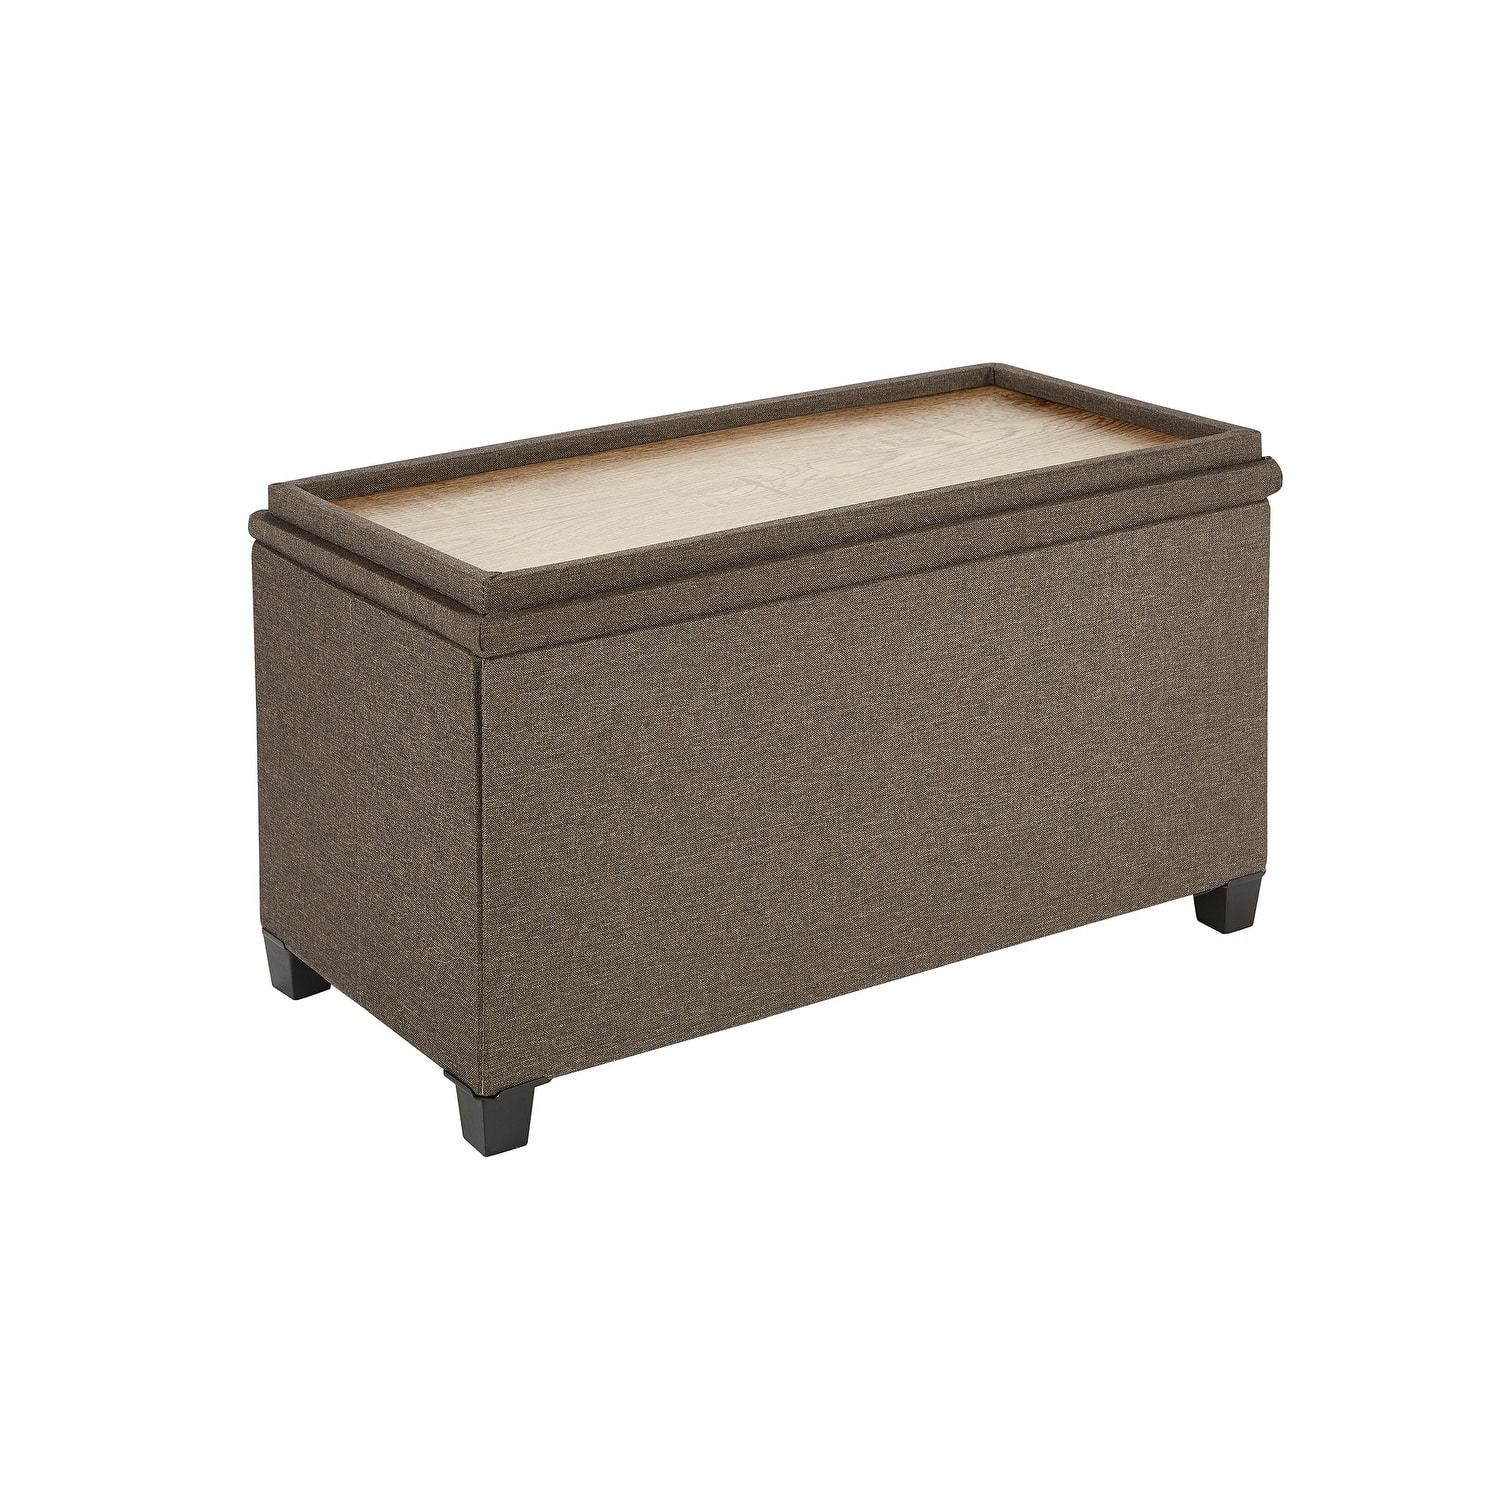 fresh home elements storage bench premium wood tray and feet rich linen upholstery brown light grey